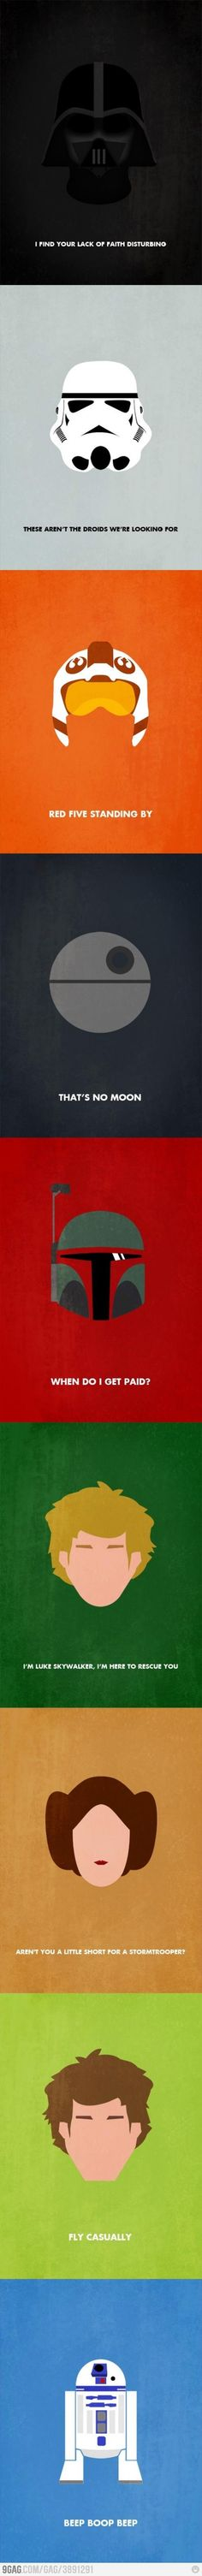 Favourite Star Wars quotes